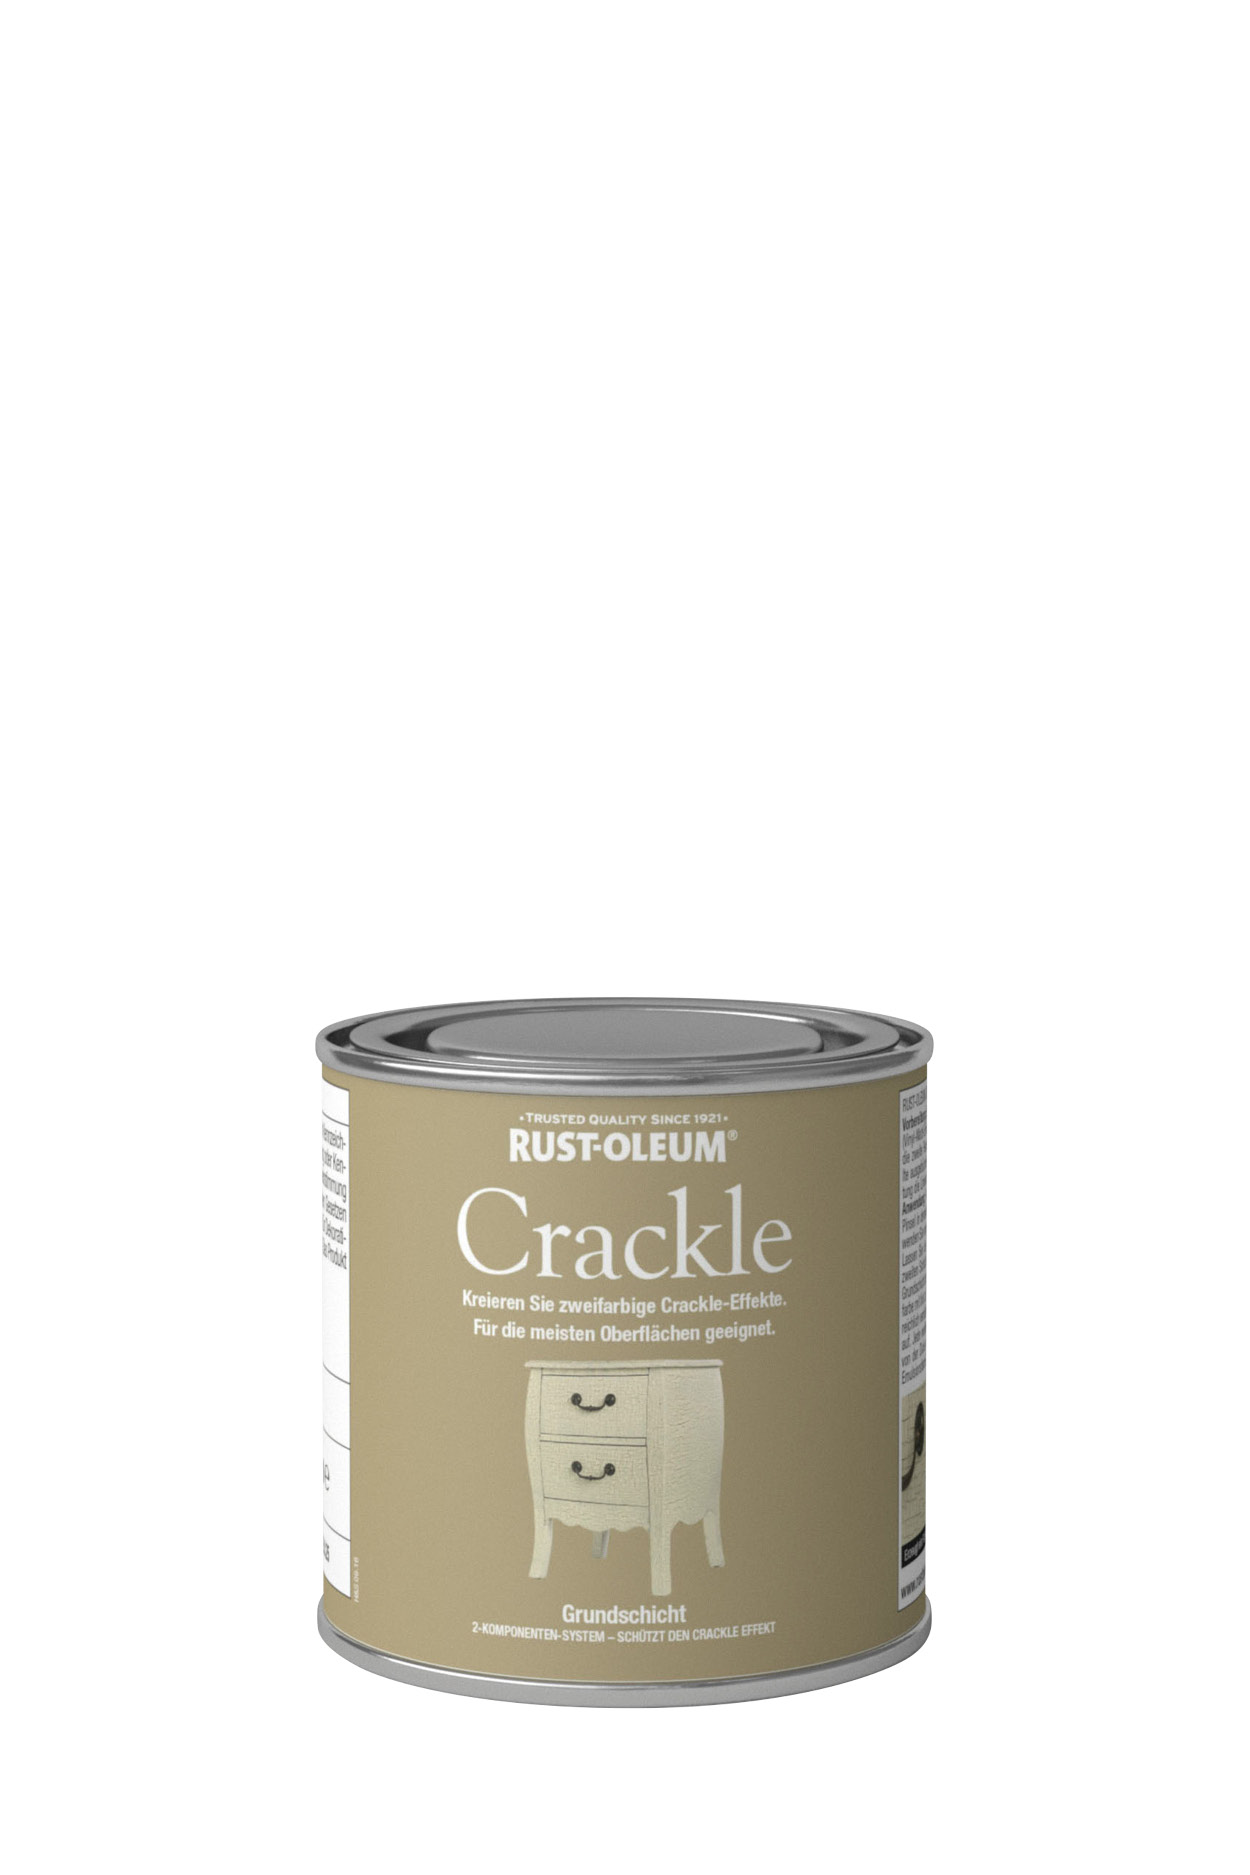 CrackleFeature